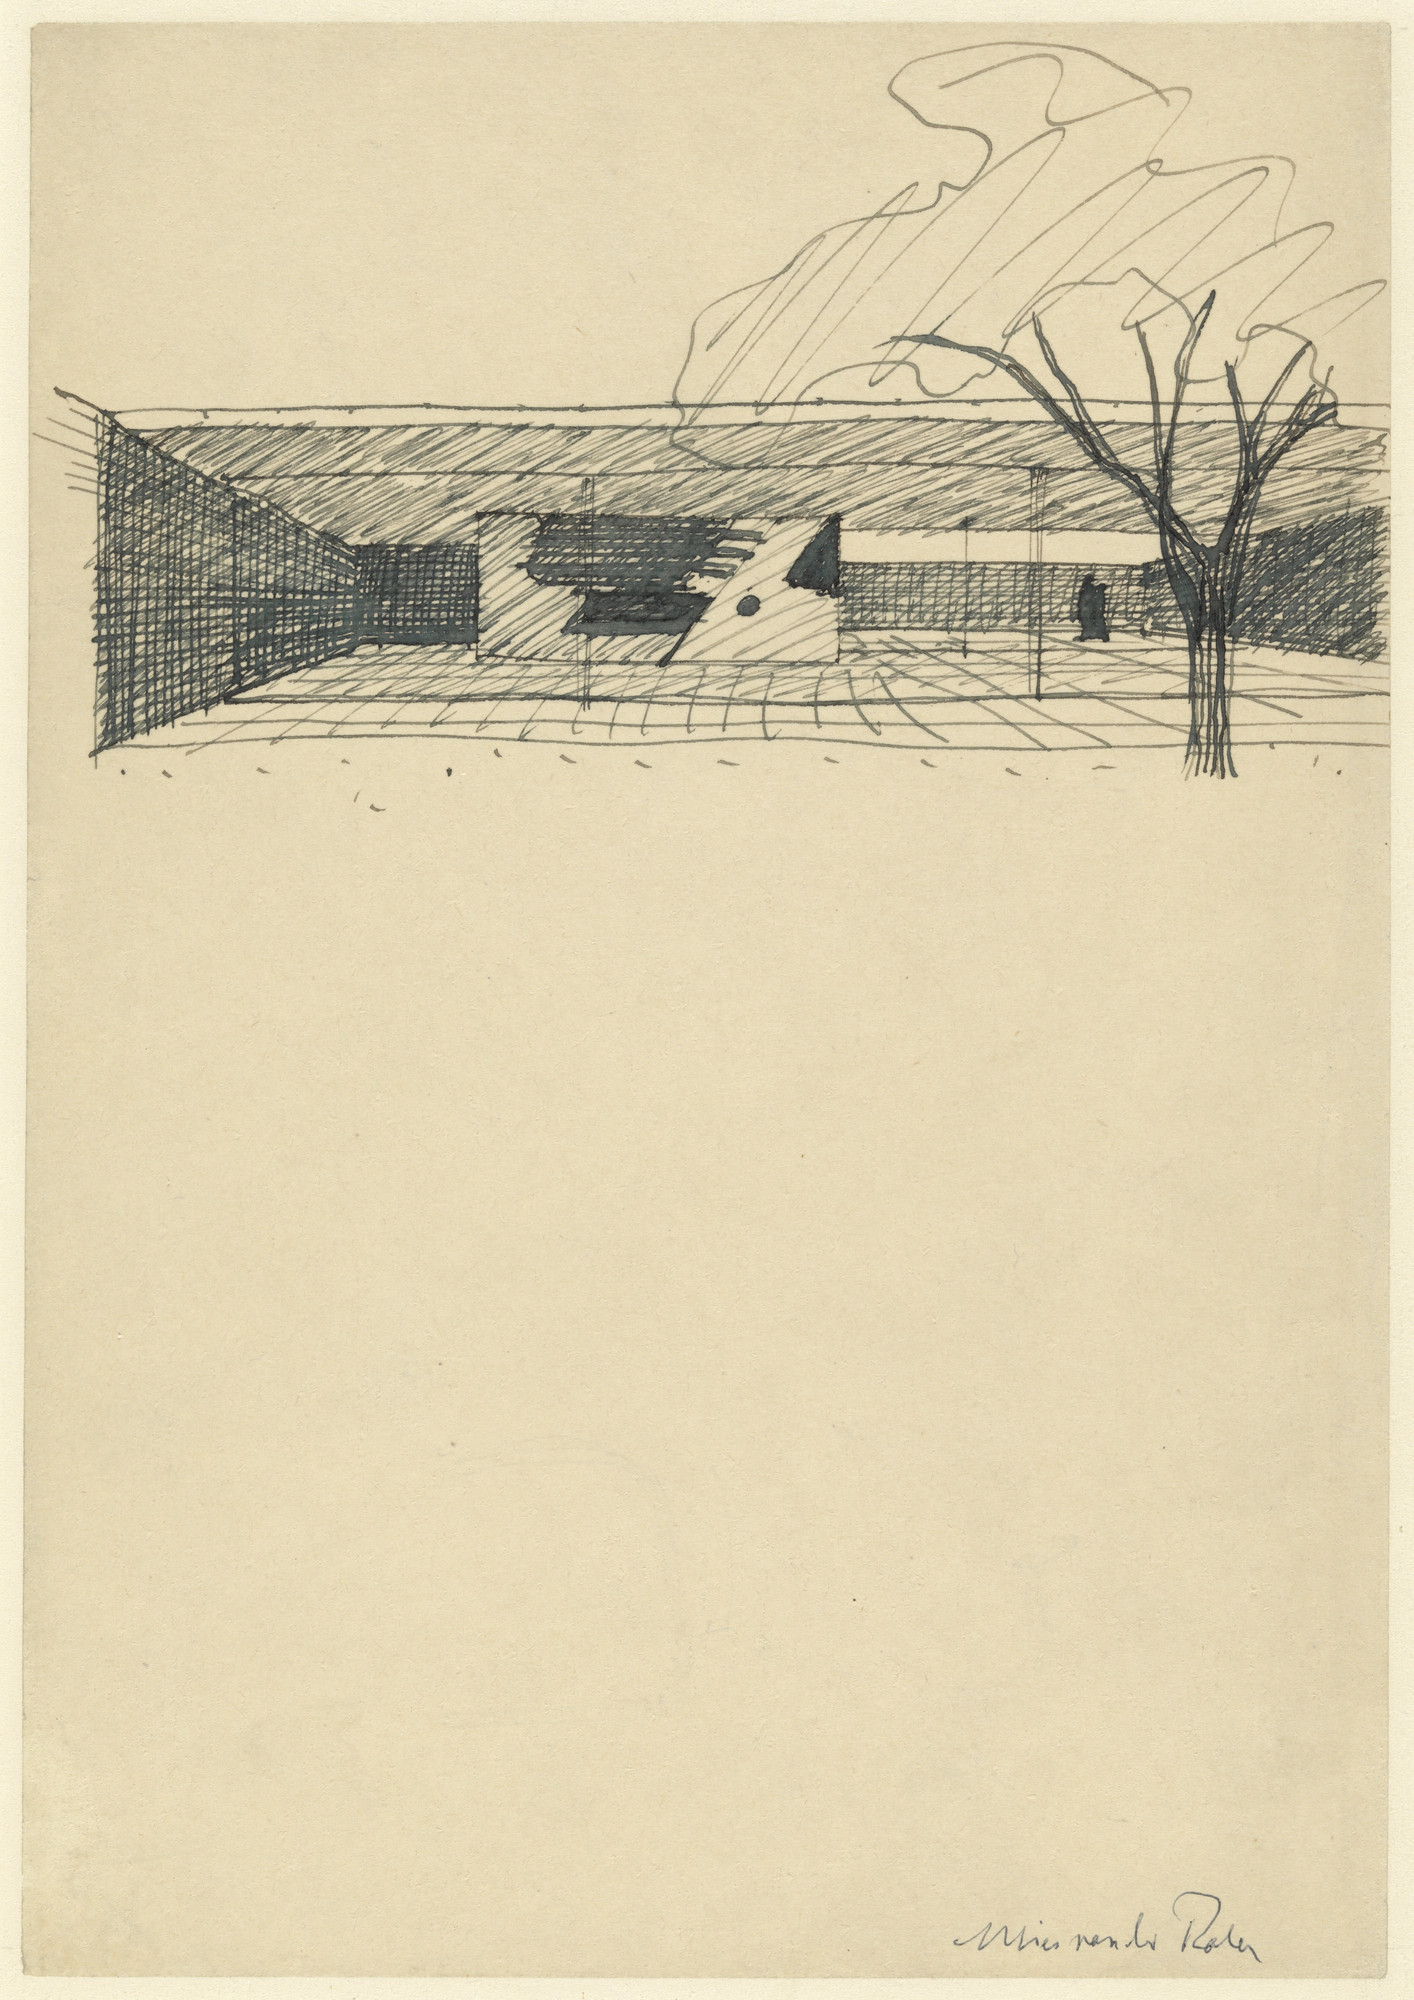 Ludwig Mies van der Rohe. Court House, project, Perspective sketch with garden sculpture. 1935